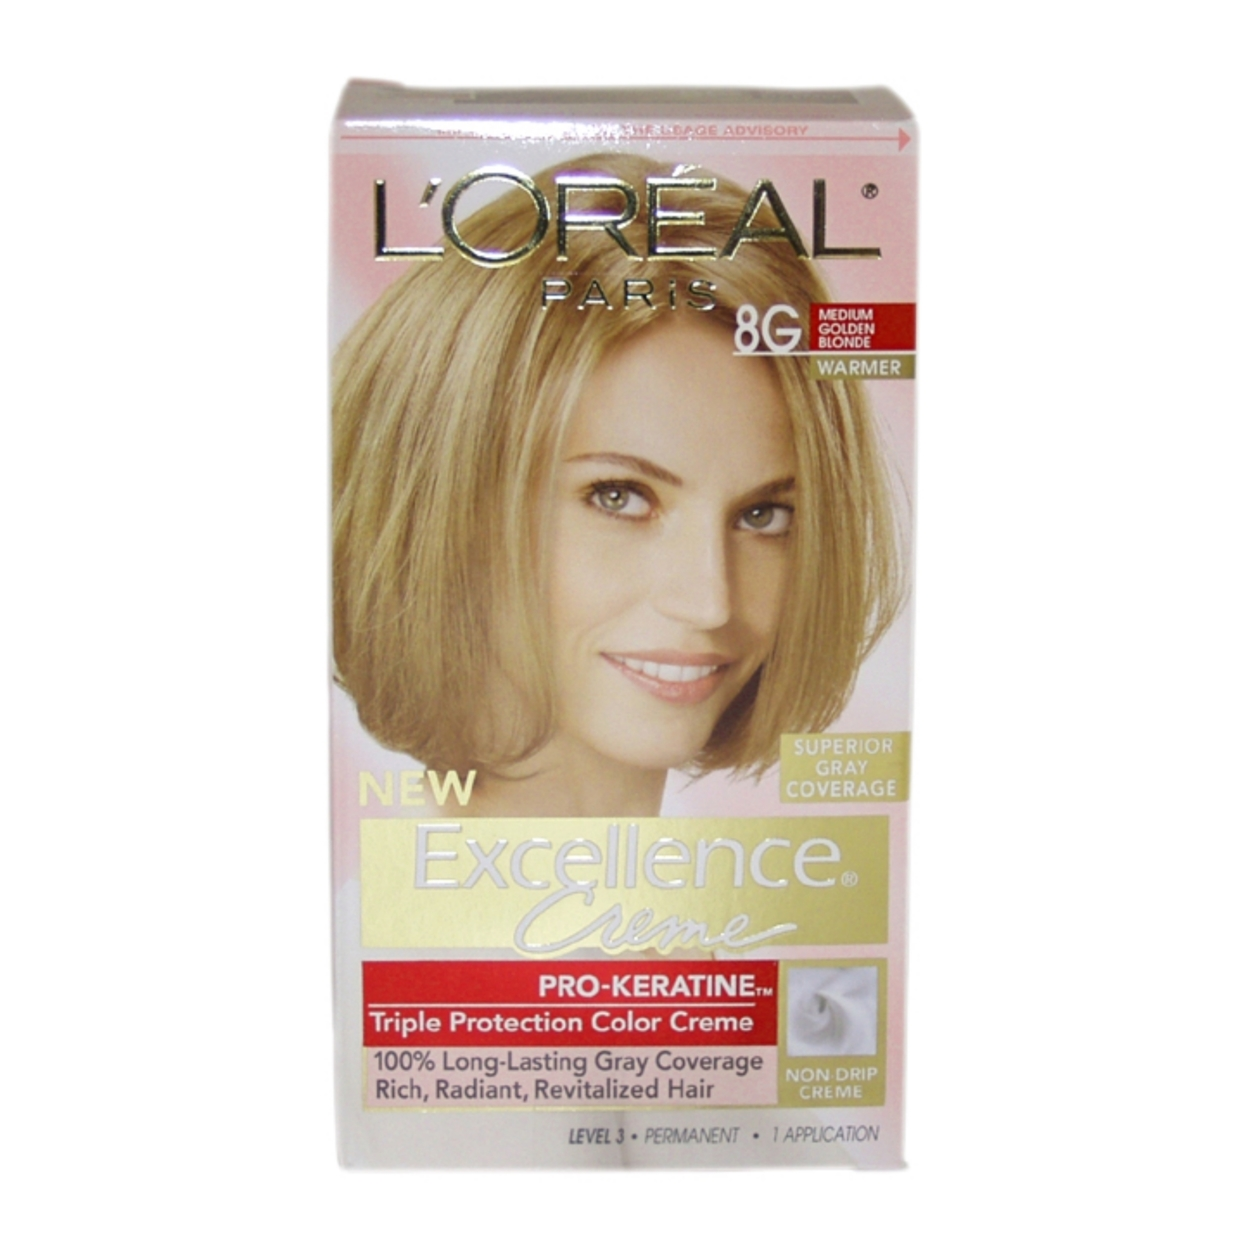 Excellence Creme Pro Keratine 8g Medium Golden Blonde Warmer By Loreal Paris For Unisex 1 Application Hair Color In Hair Color From Beauty Health